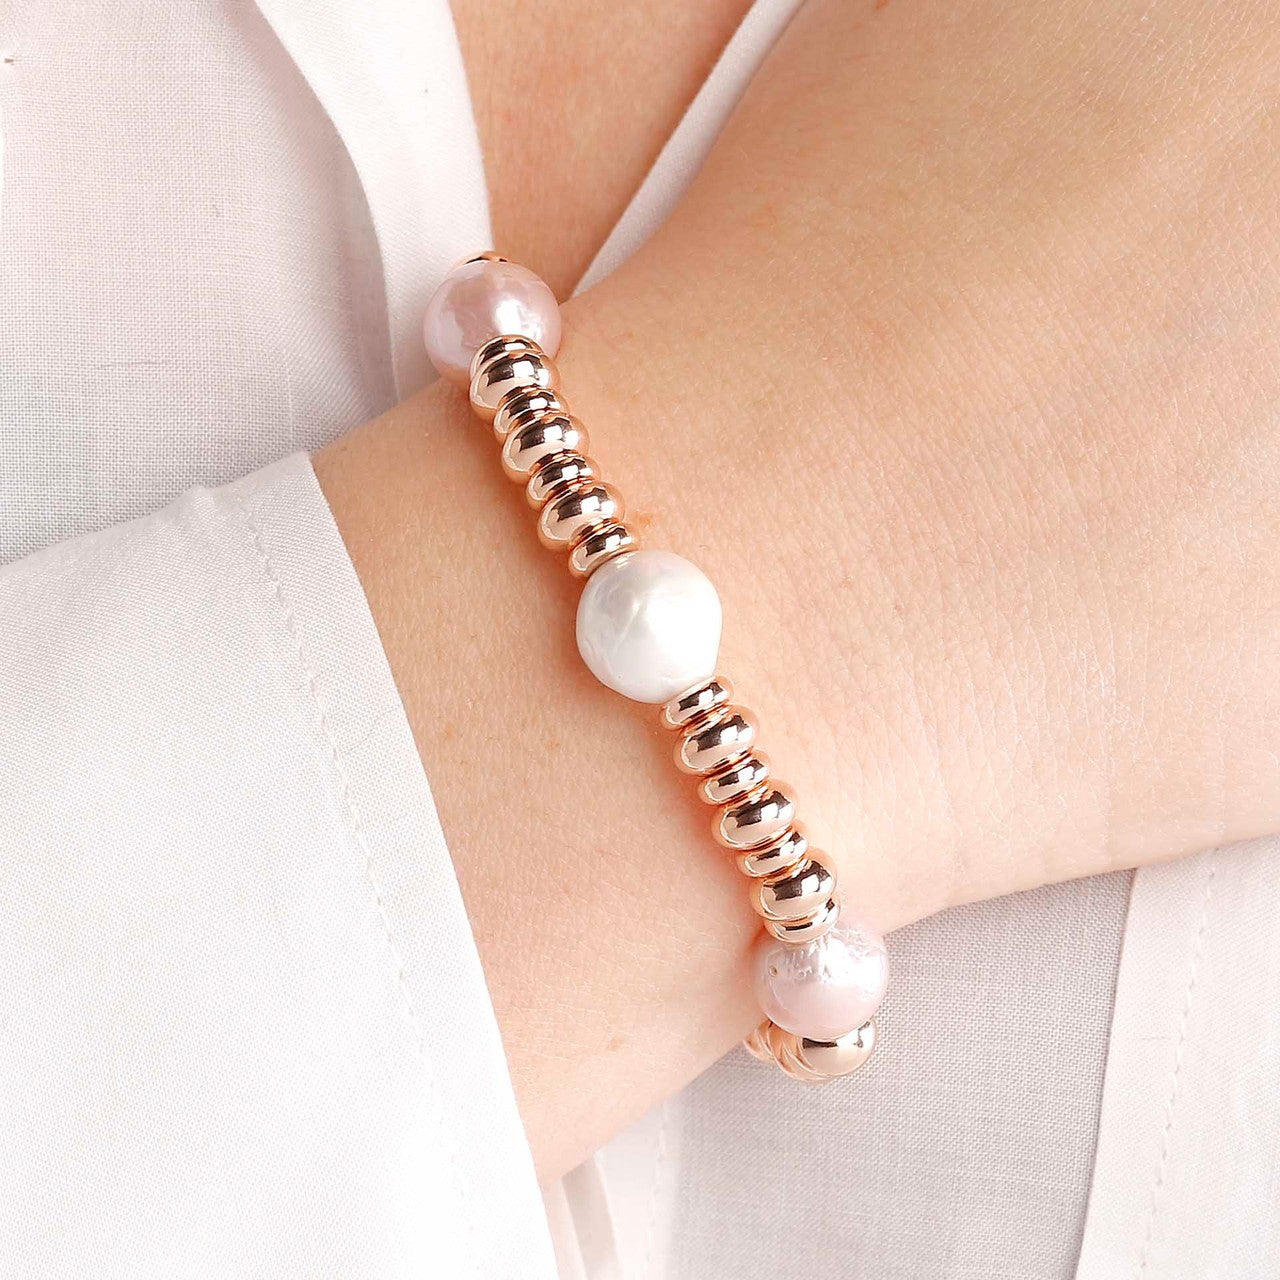 worn Pearls and Discs Bracelet